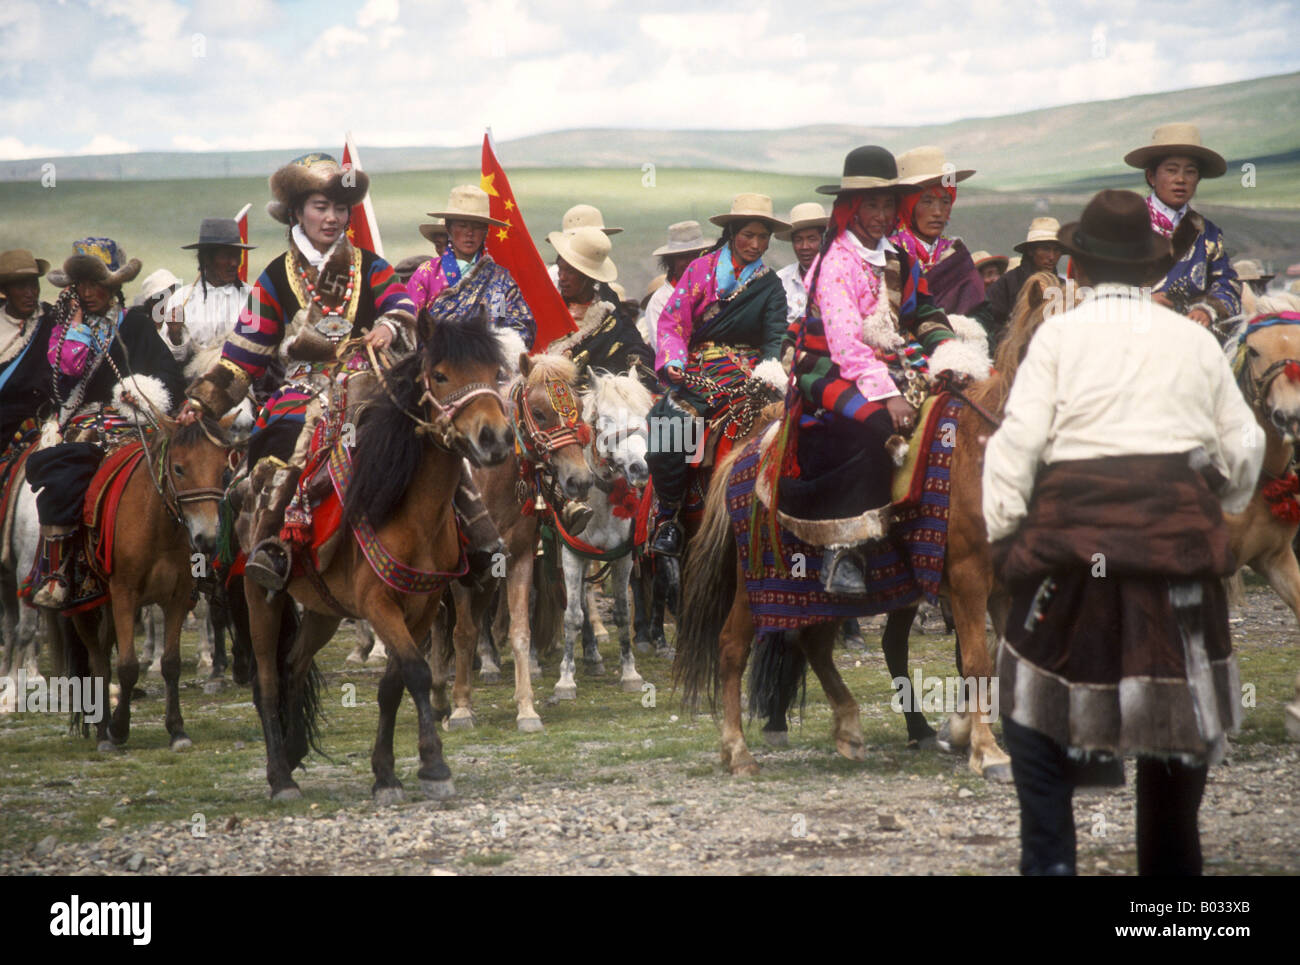 Horse riding display by traditionally dressed Tibetan girls at the annual Naqu Horse Fair in Northern Tibet - Stock Image